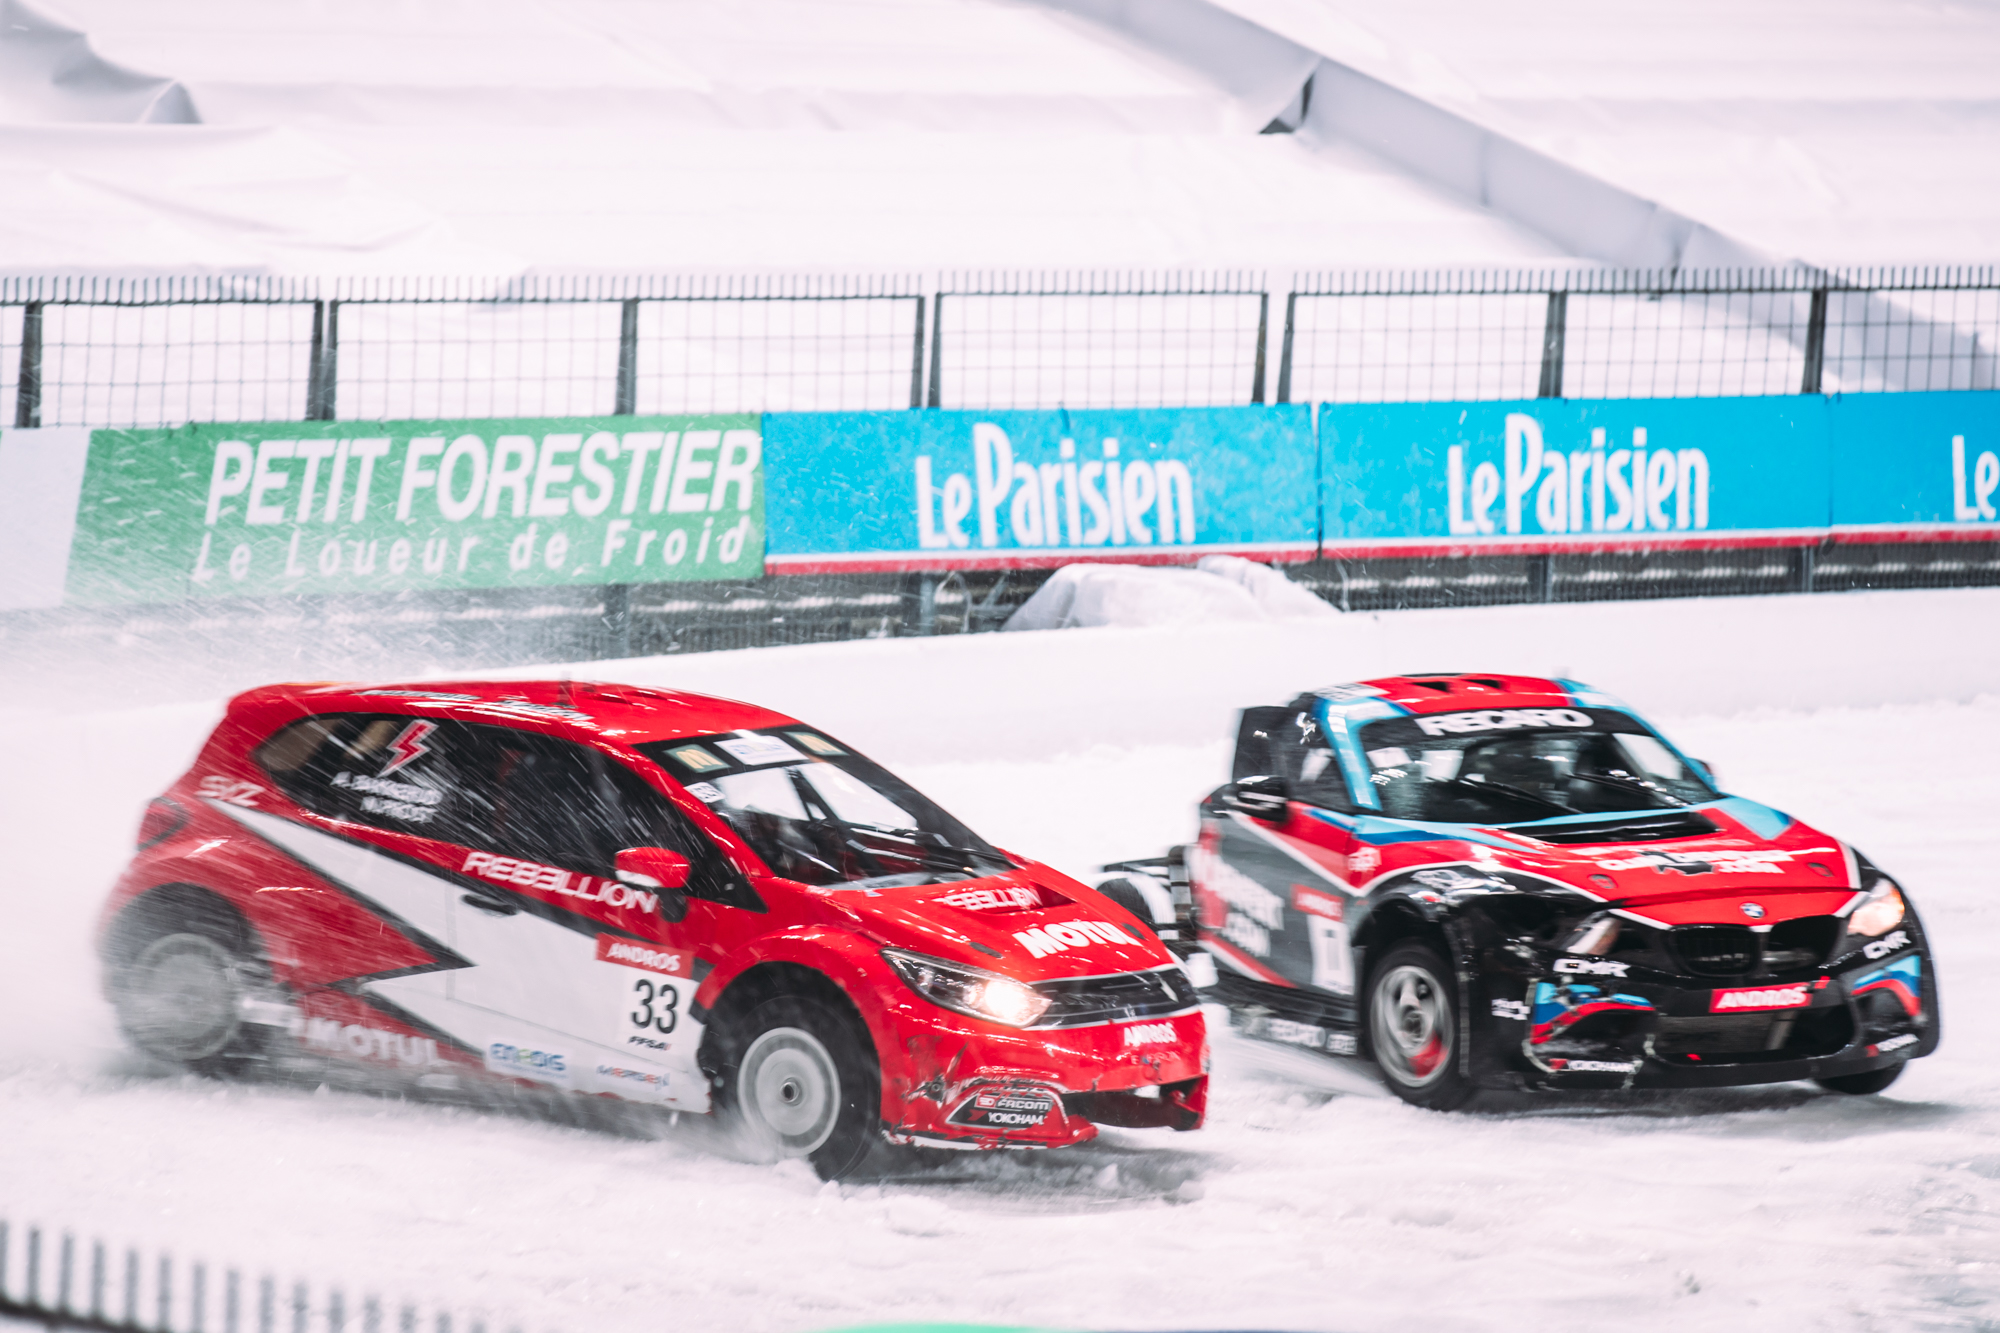 Electric powered cars beat petrol cars at the Stade de France